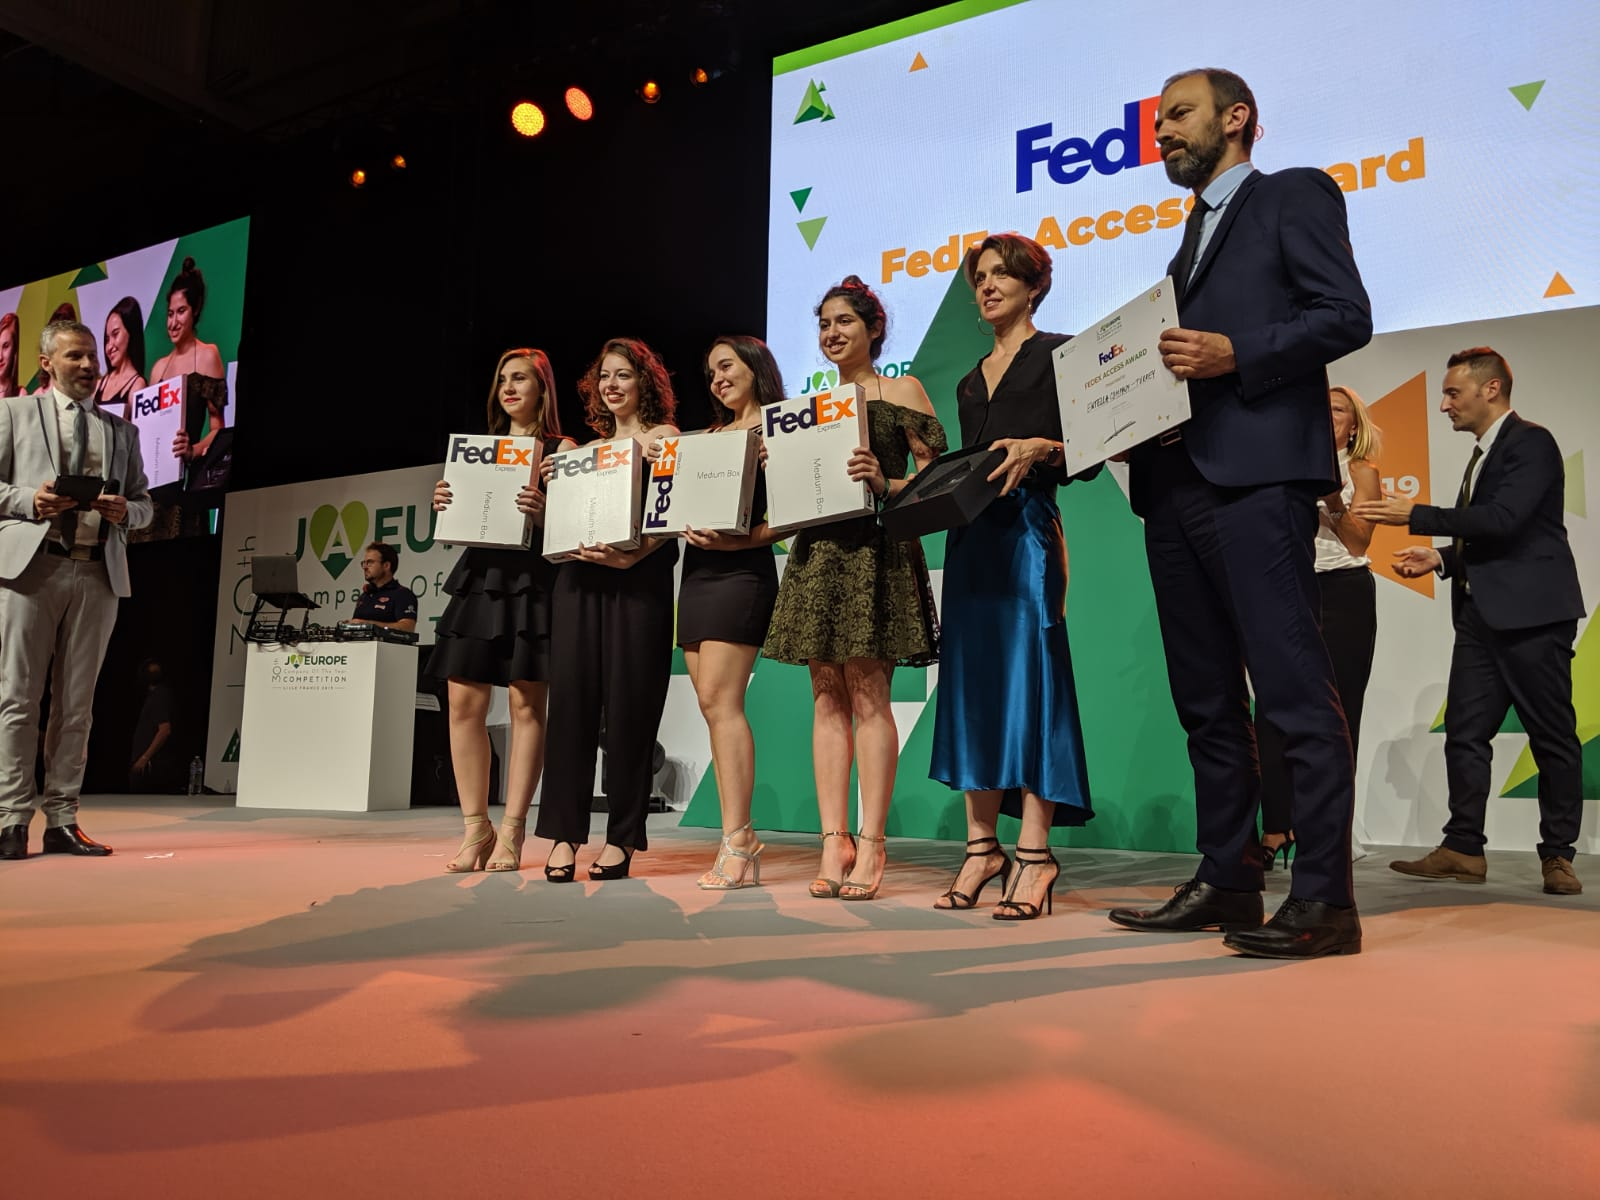 Entella Company, winner of the 2019 FedEx Access Award.